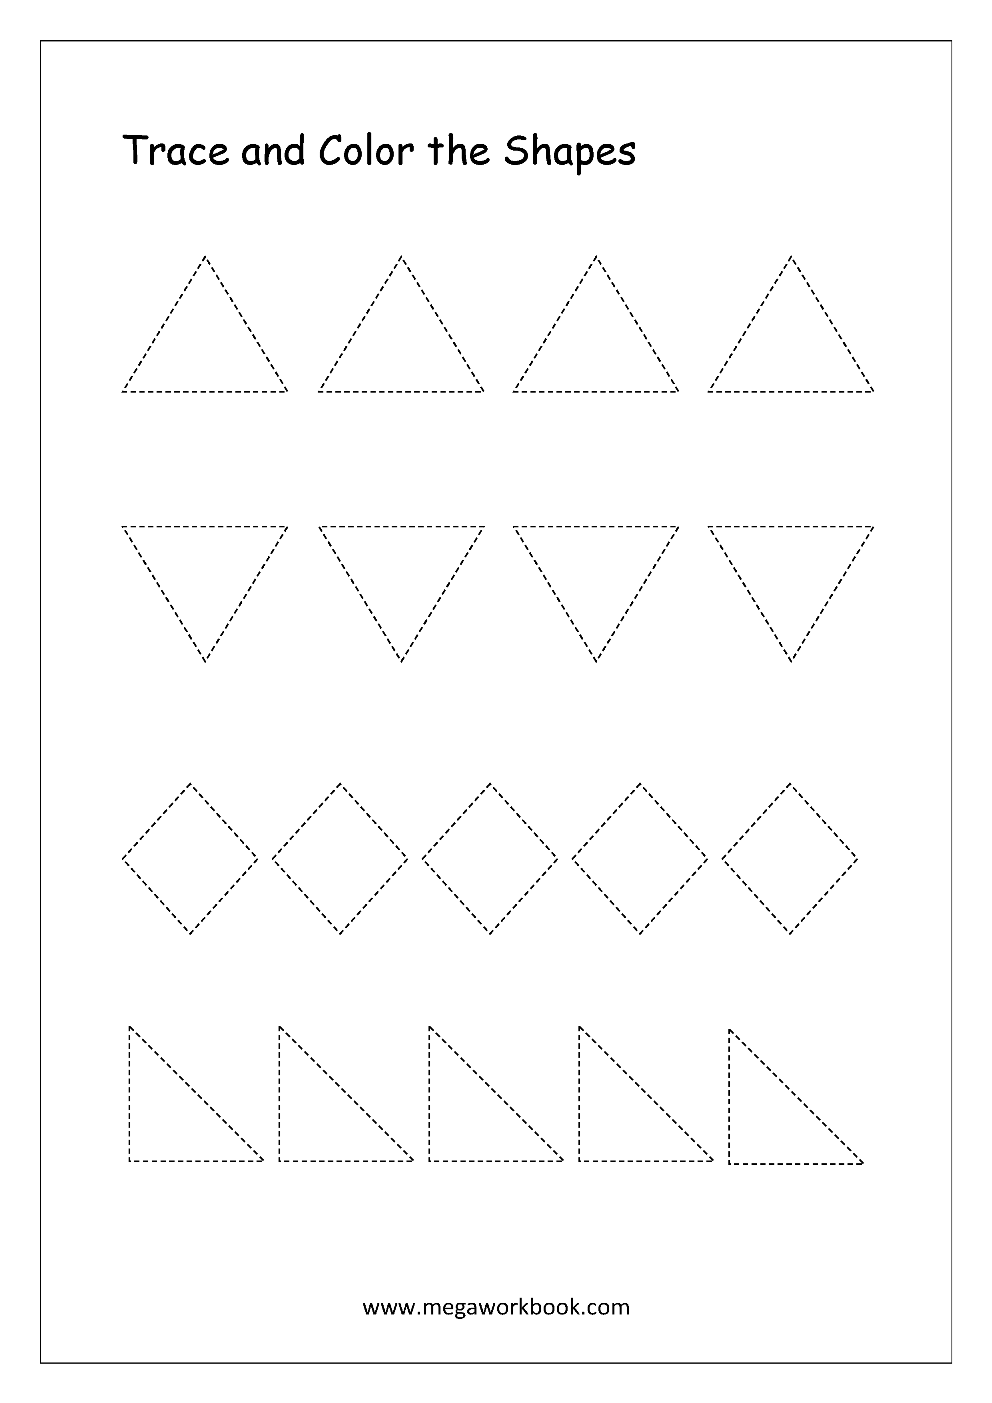 Color shapes worksheets -  Trace And Color The Shapes Triangle Diamond